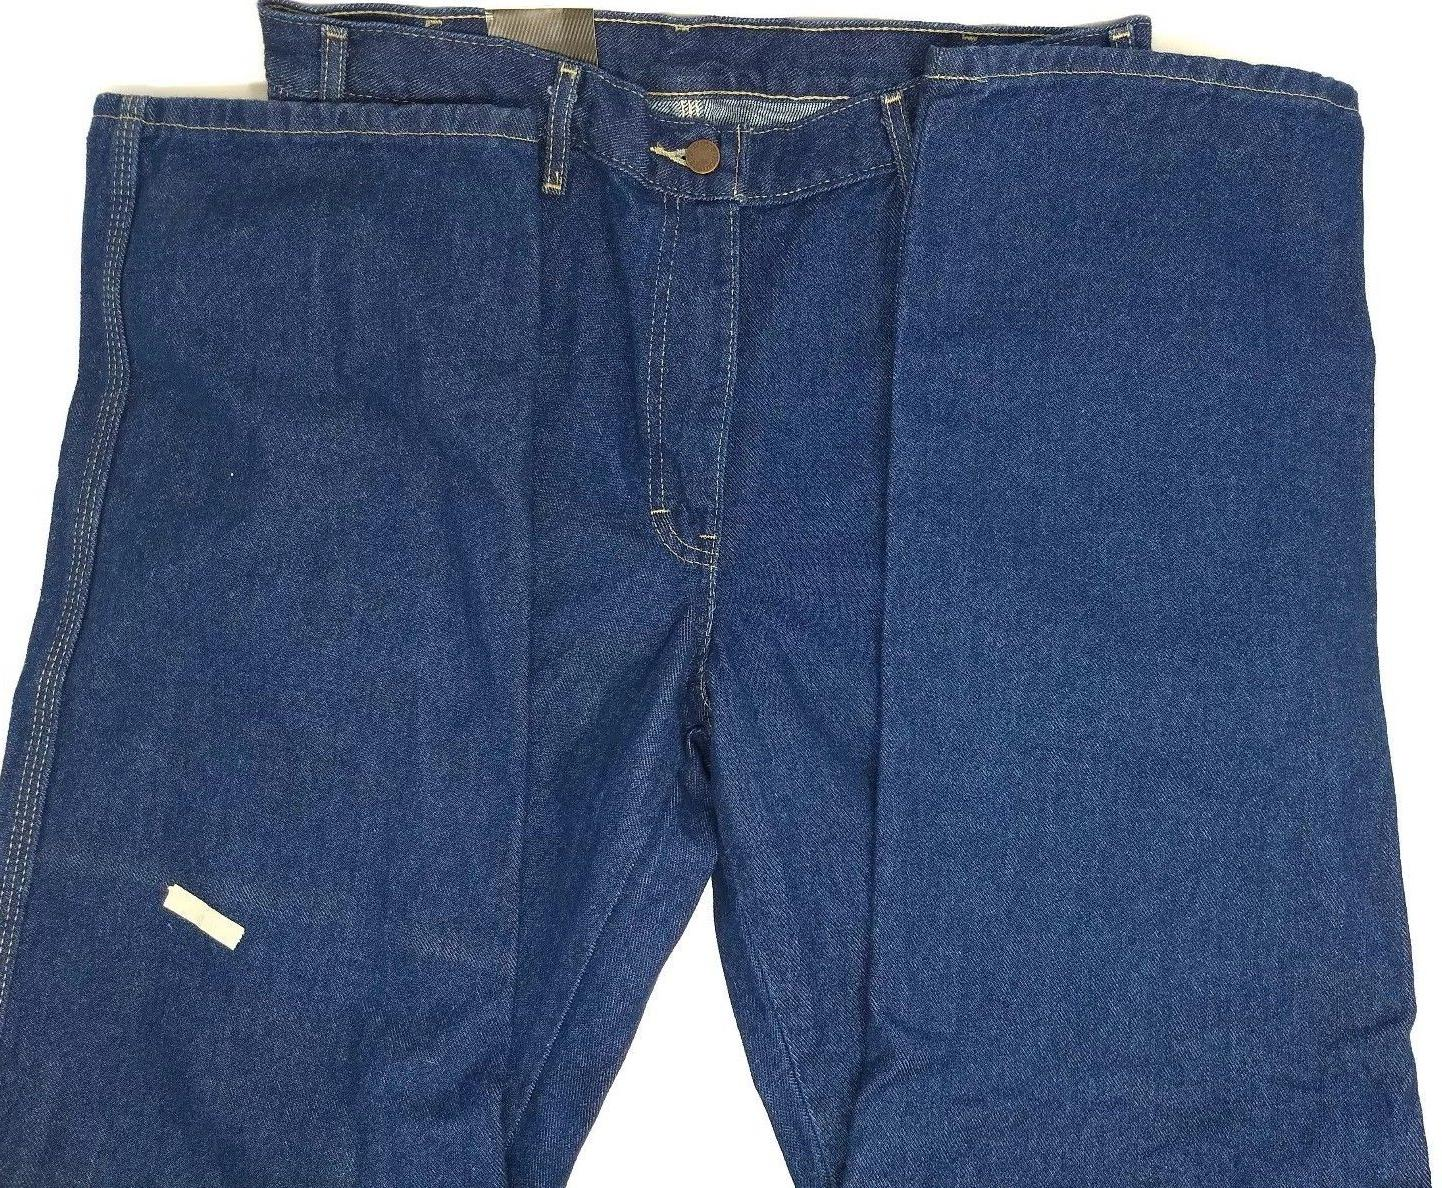 NWT Dickies Carpenter Jeans Seconds Size 34 x 34